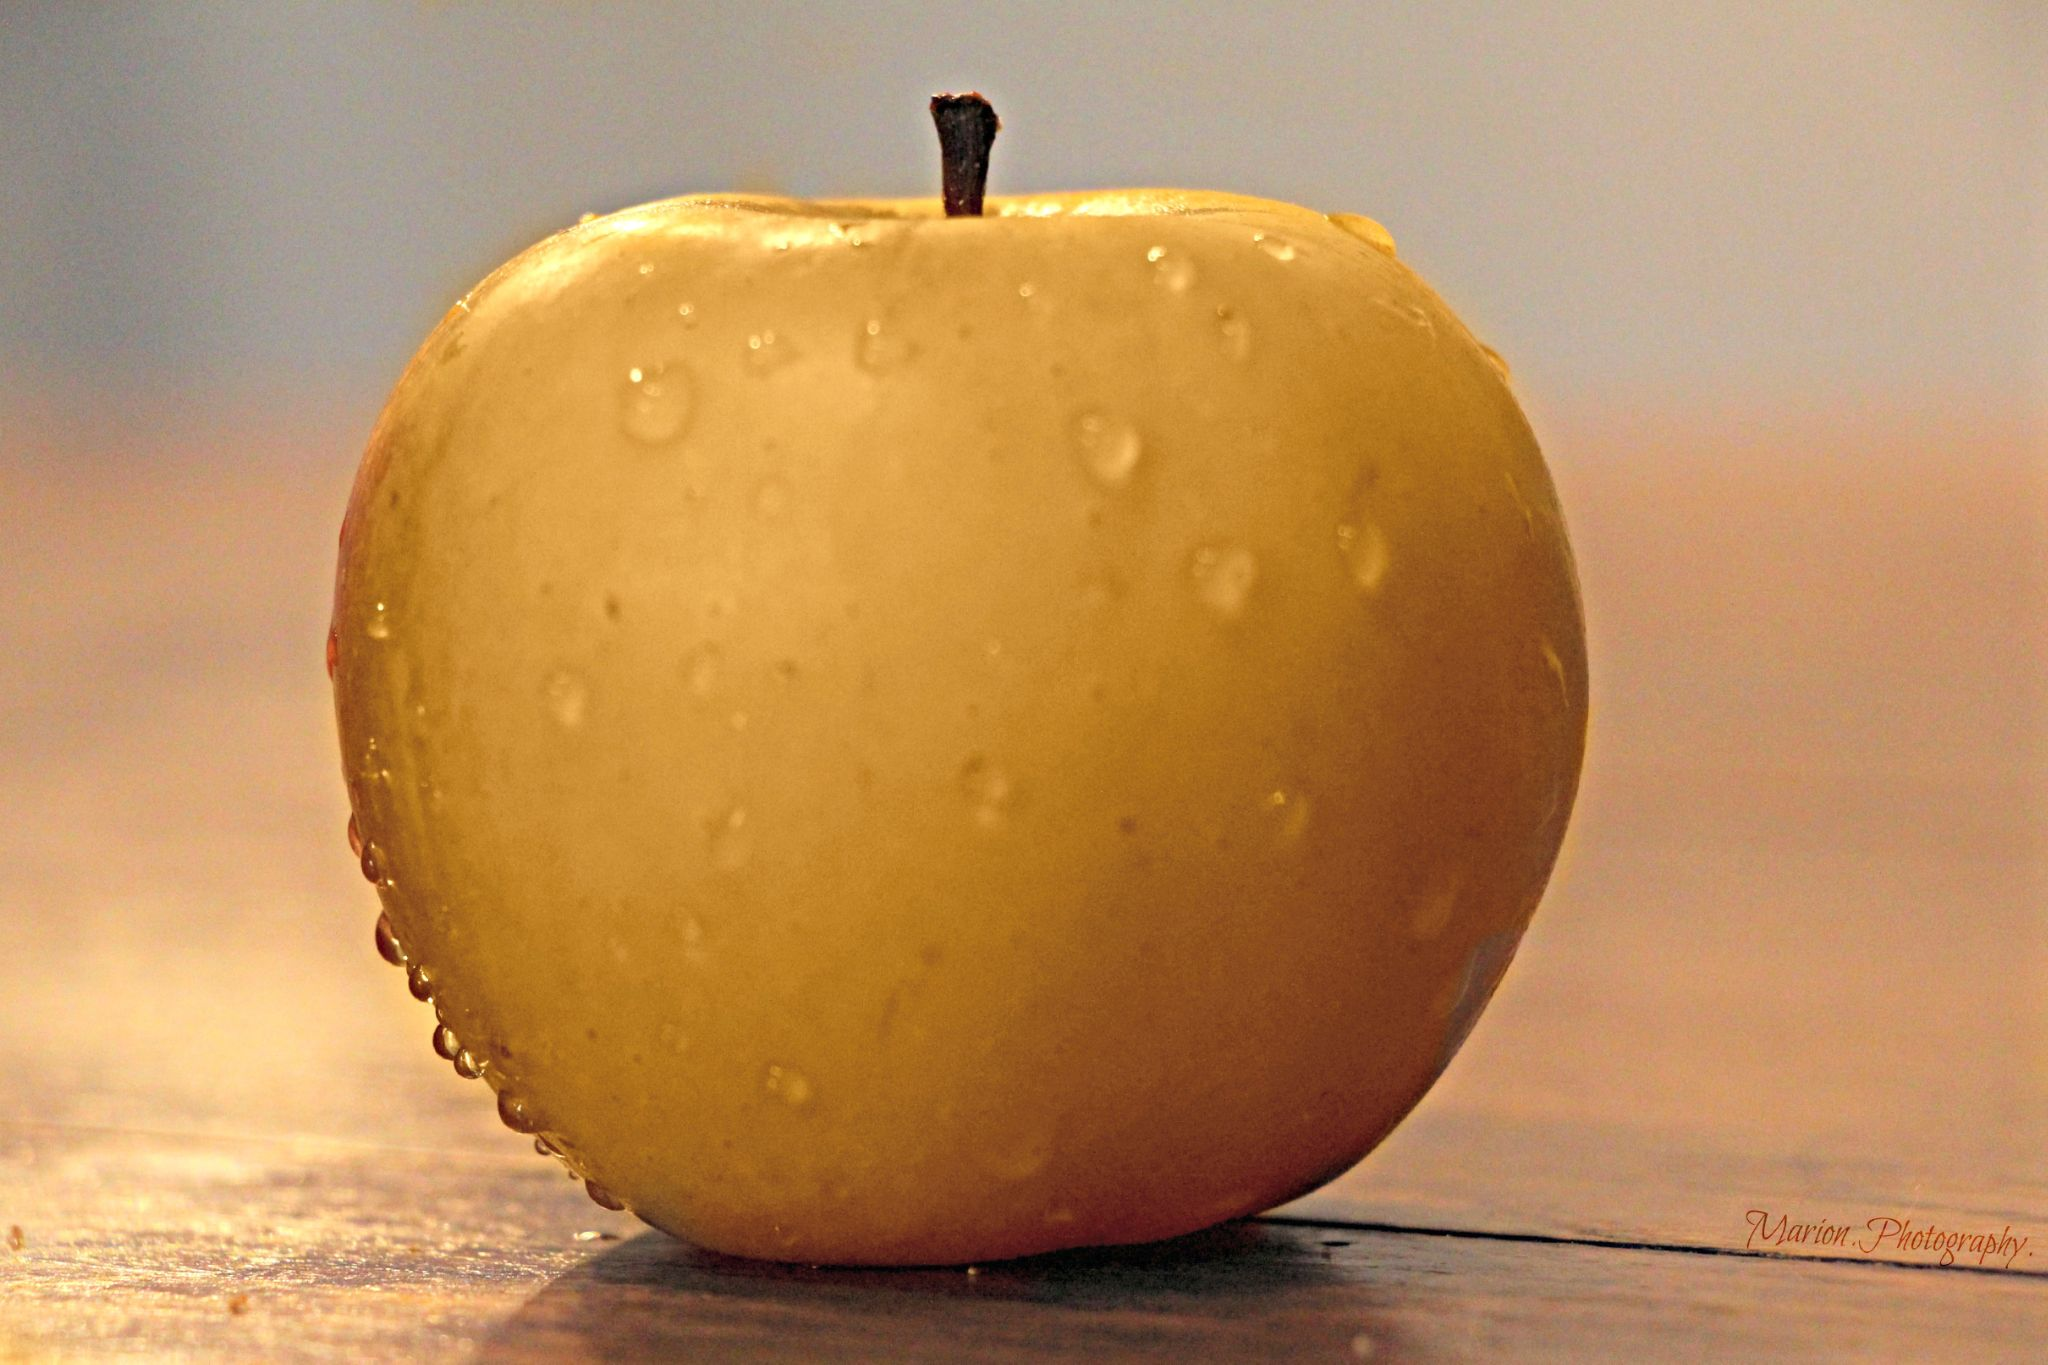 apple  by Marion.photography.